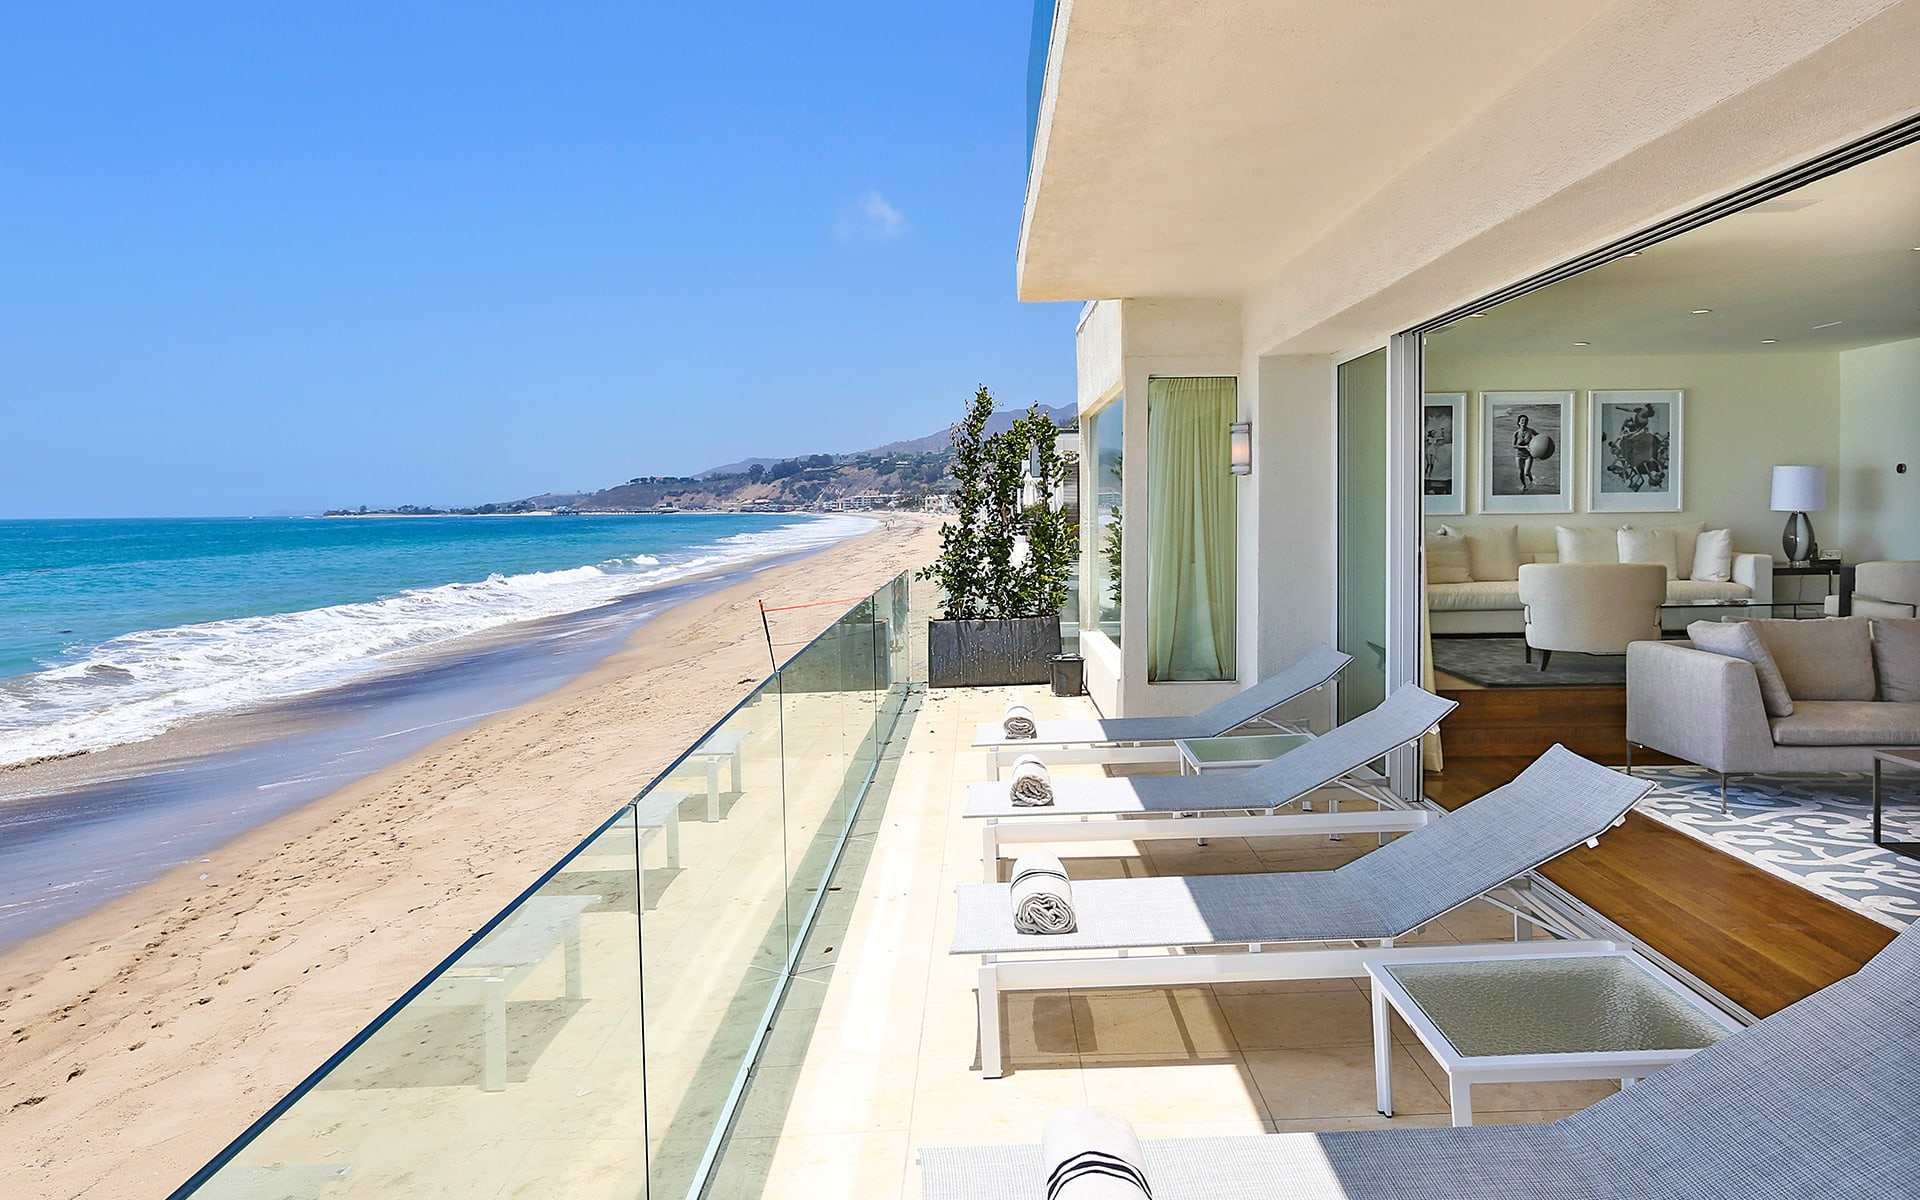 Single Family Home for Sale at 21830 Pacific Coast Hwy 21830 Pacific Coast Hwy Malibu, California,90265 United States